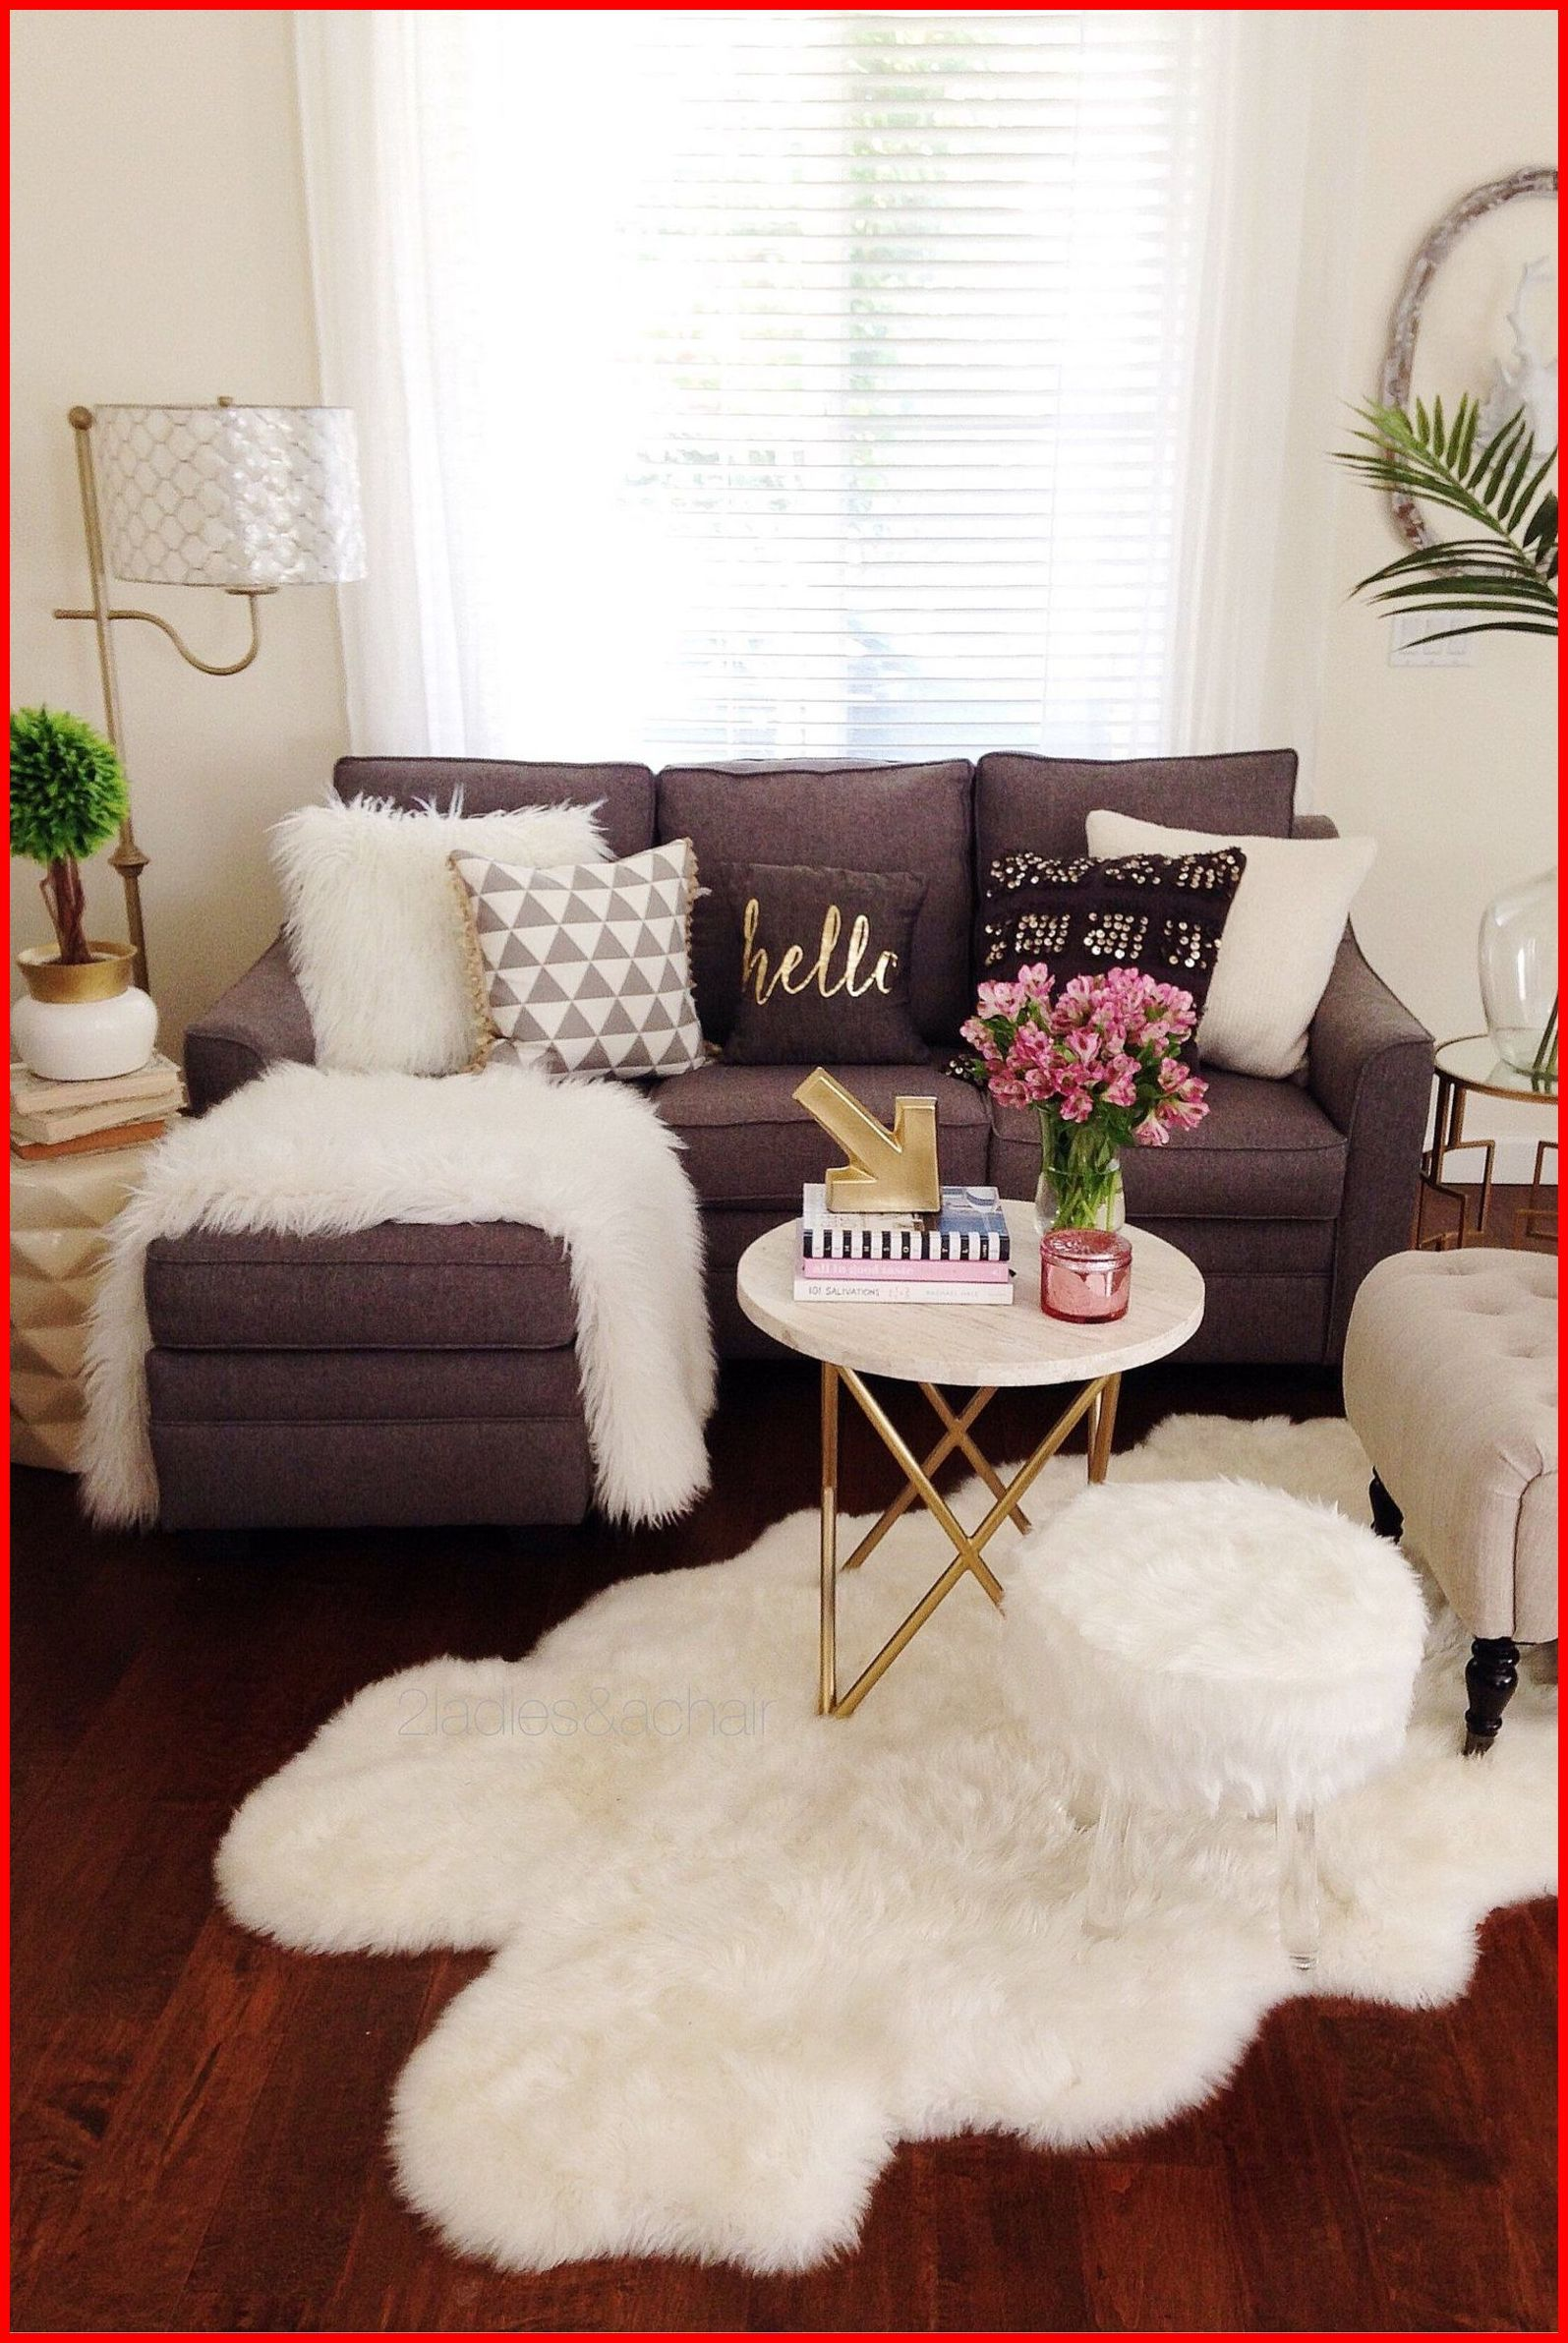 Diy room decor is your game room ready for super bowl xlv want